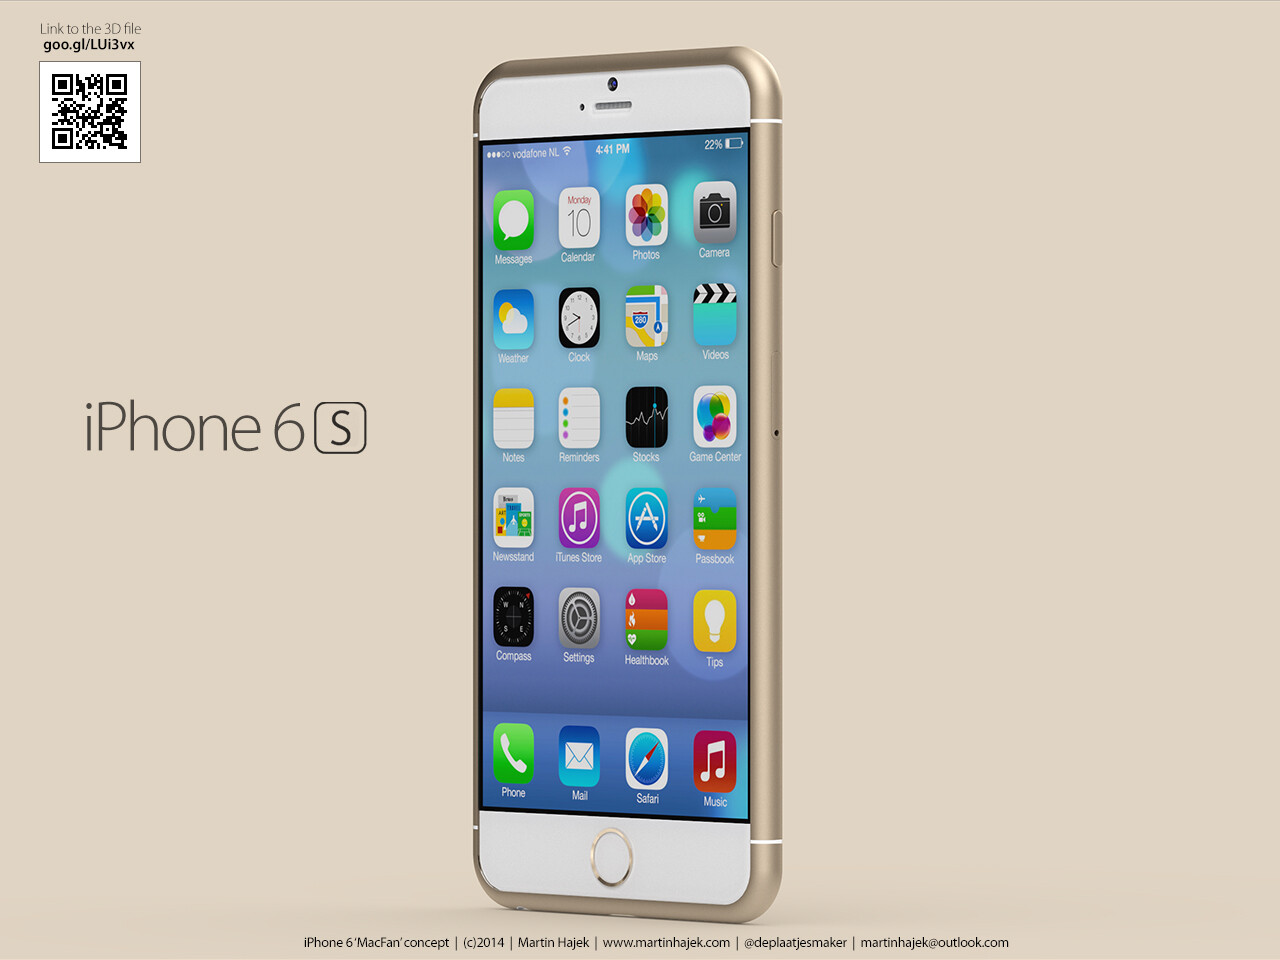 apple iphone 6s and 6c concept reimagines apple 39 s next big. Black Bedroom Furniture Sets. Home Design Ideas